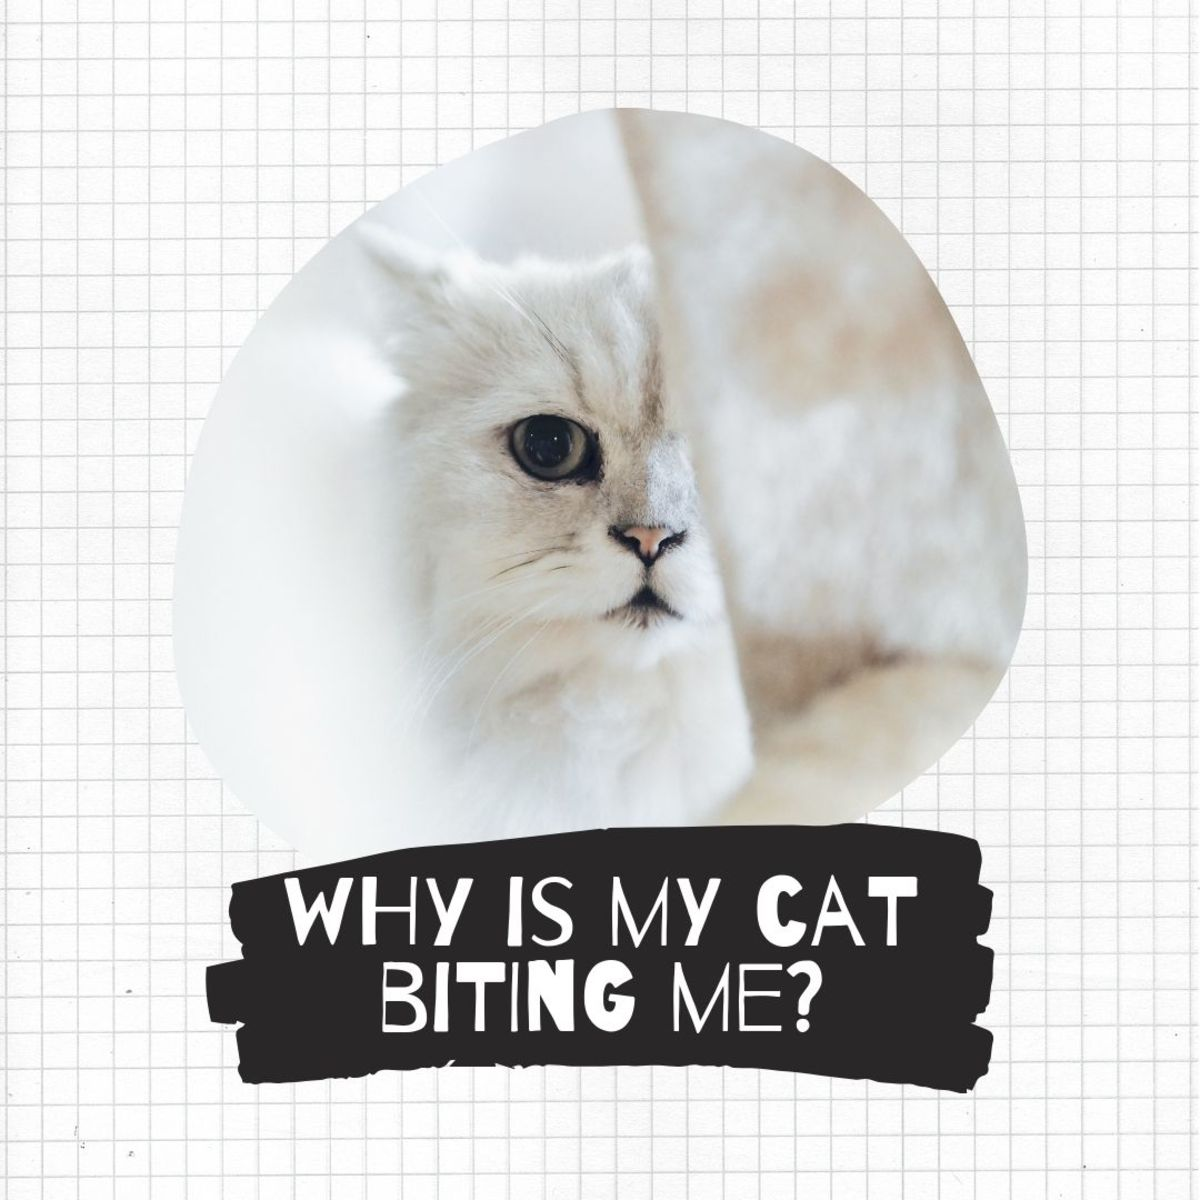 Find out why your cat is biting you and how to deal with it.